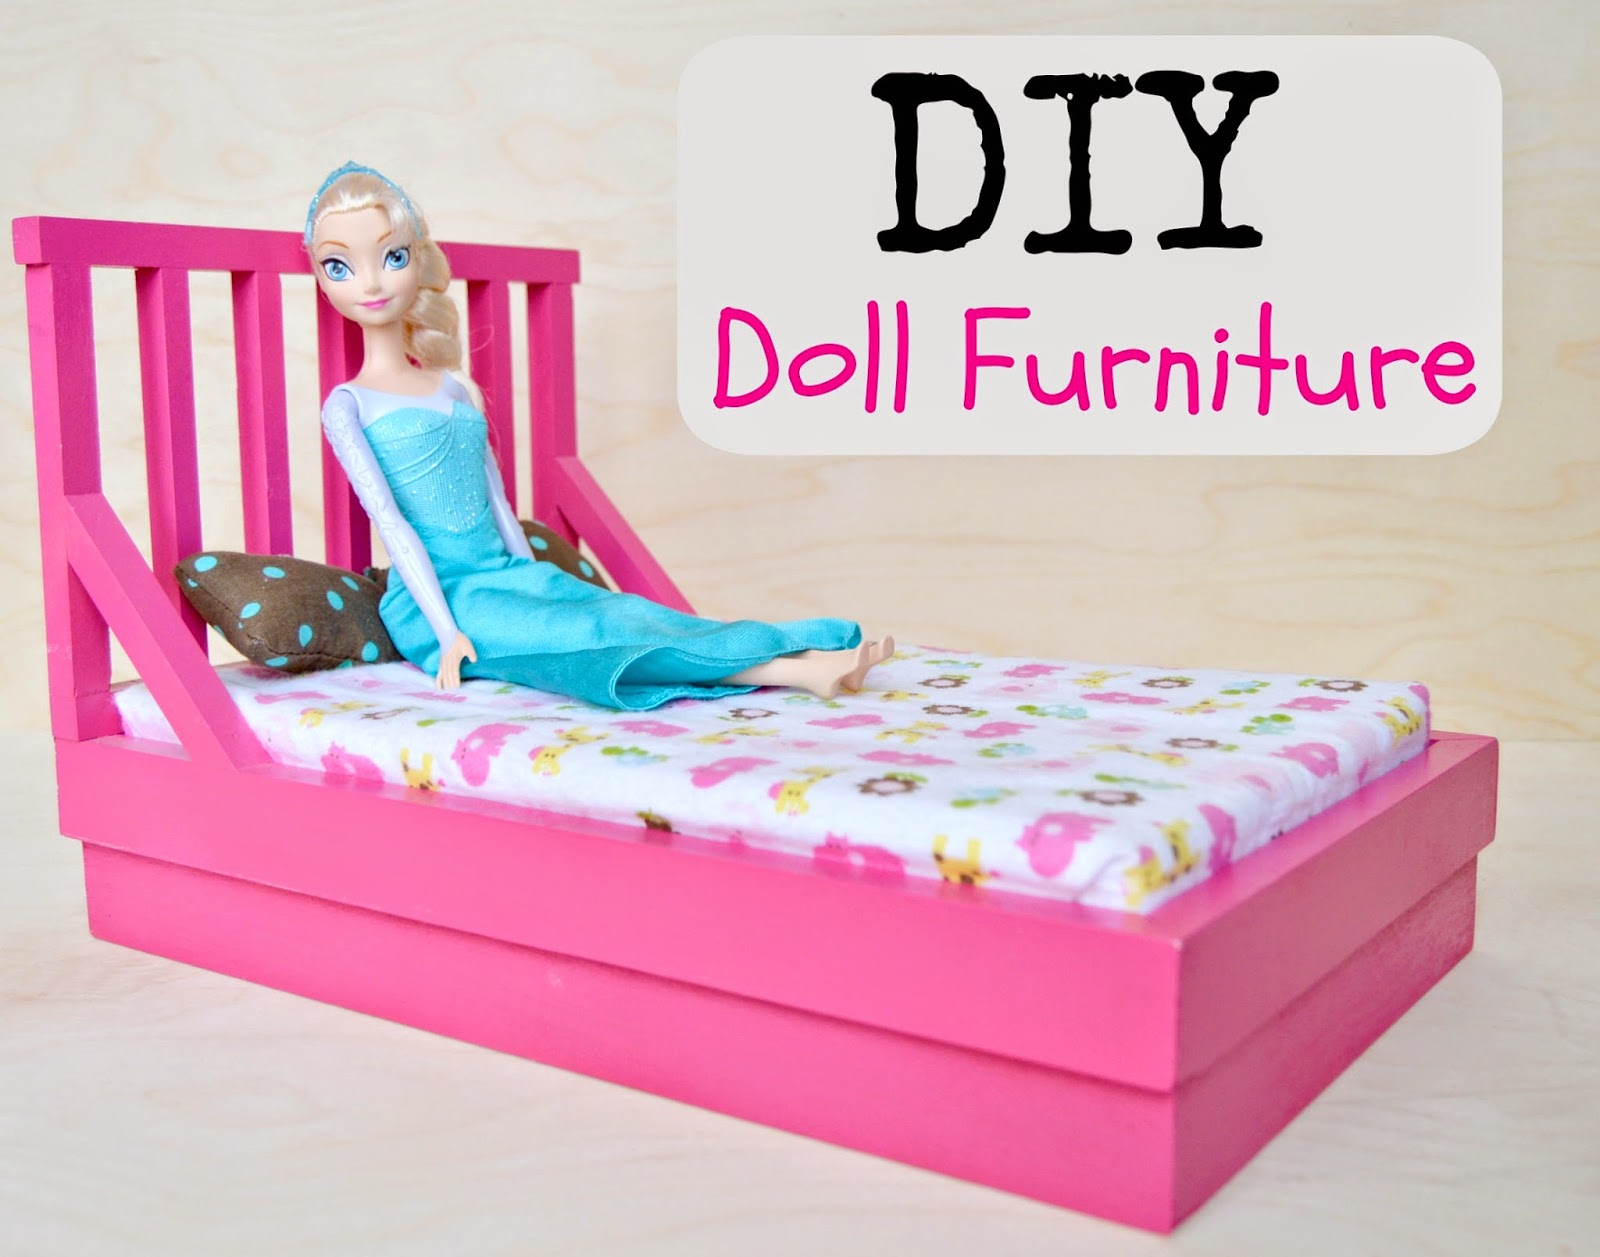 KRUSE'S WORKSHOP: DIY Dollhouse Furniture